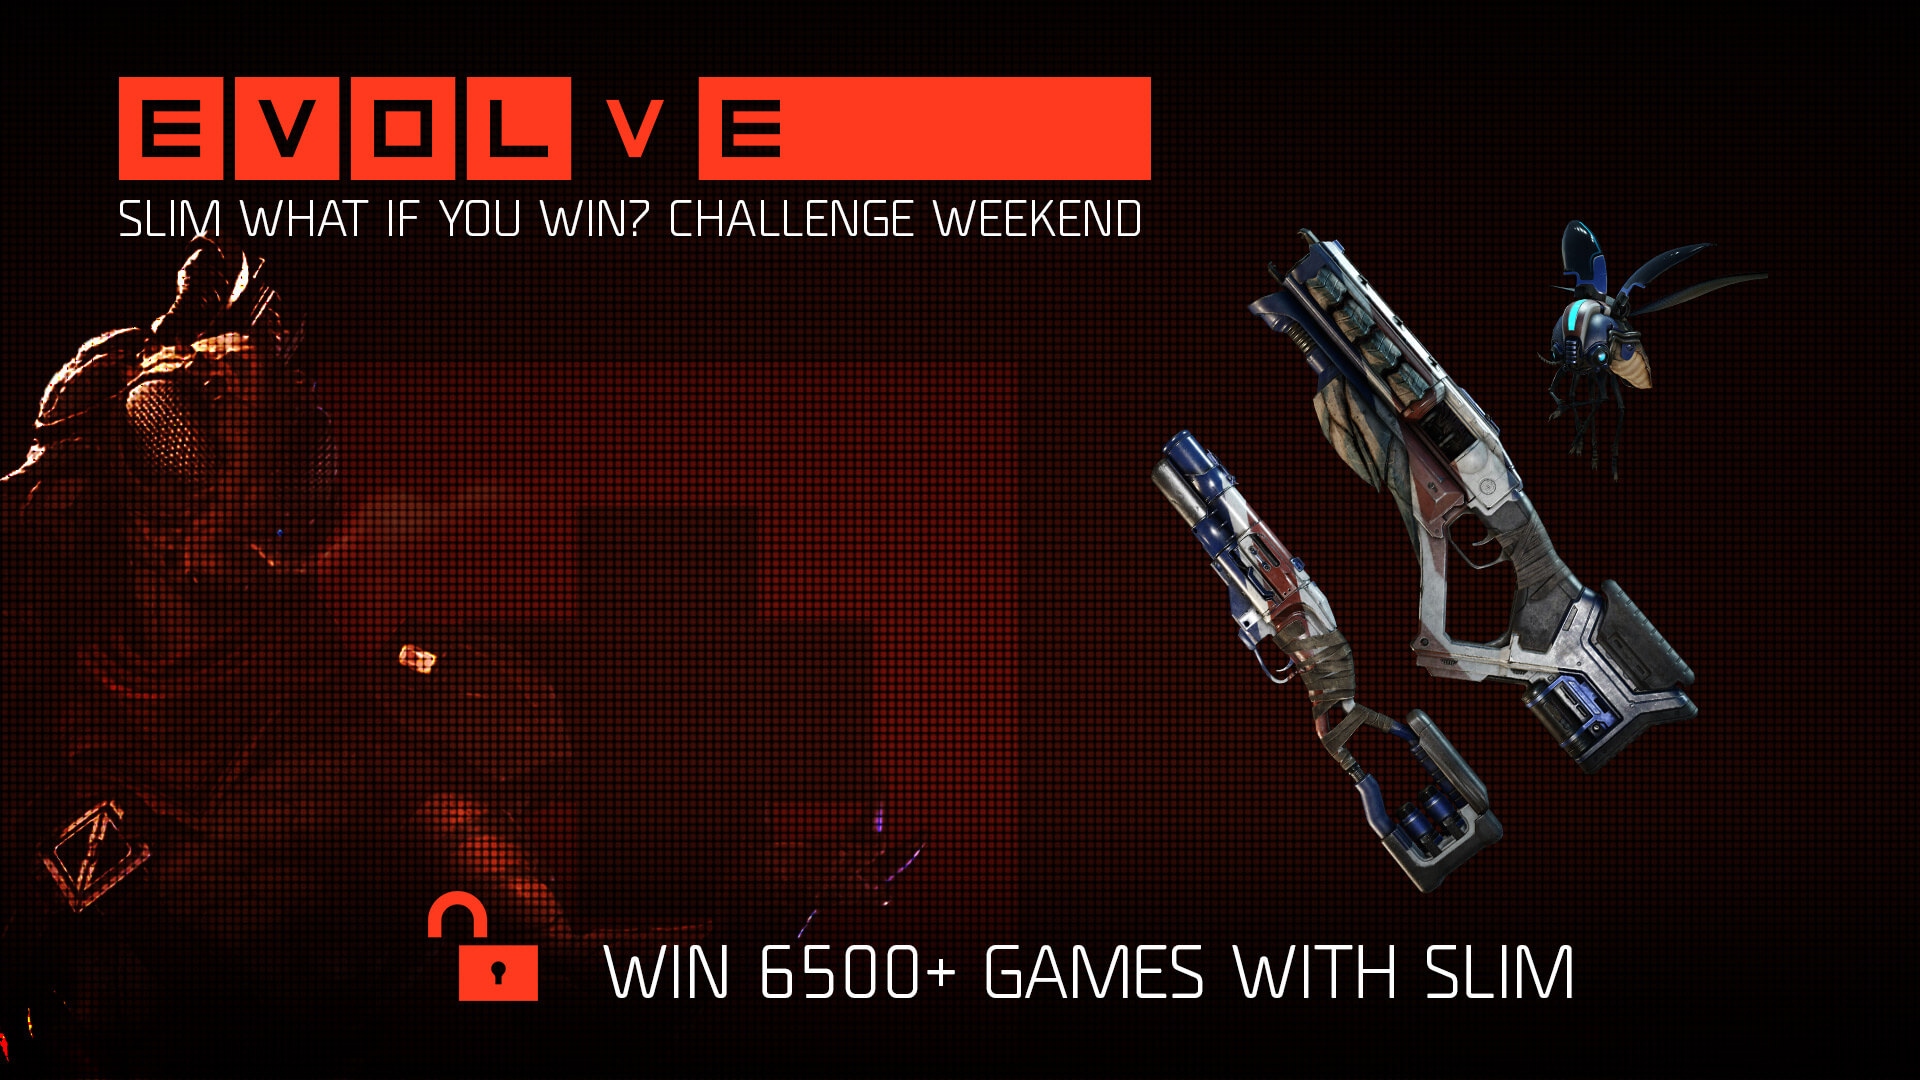 Evolve Slim Challenge What if you win